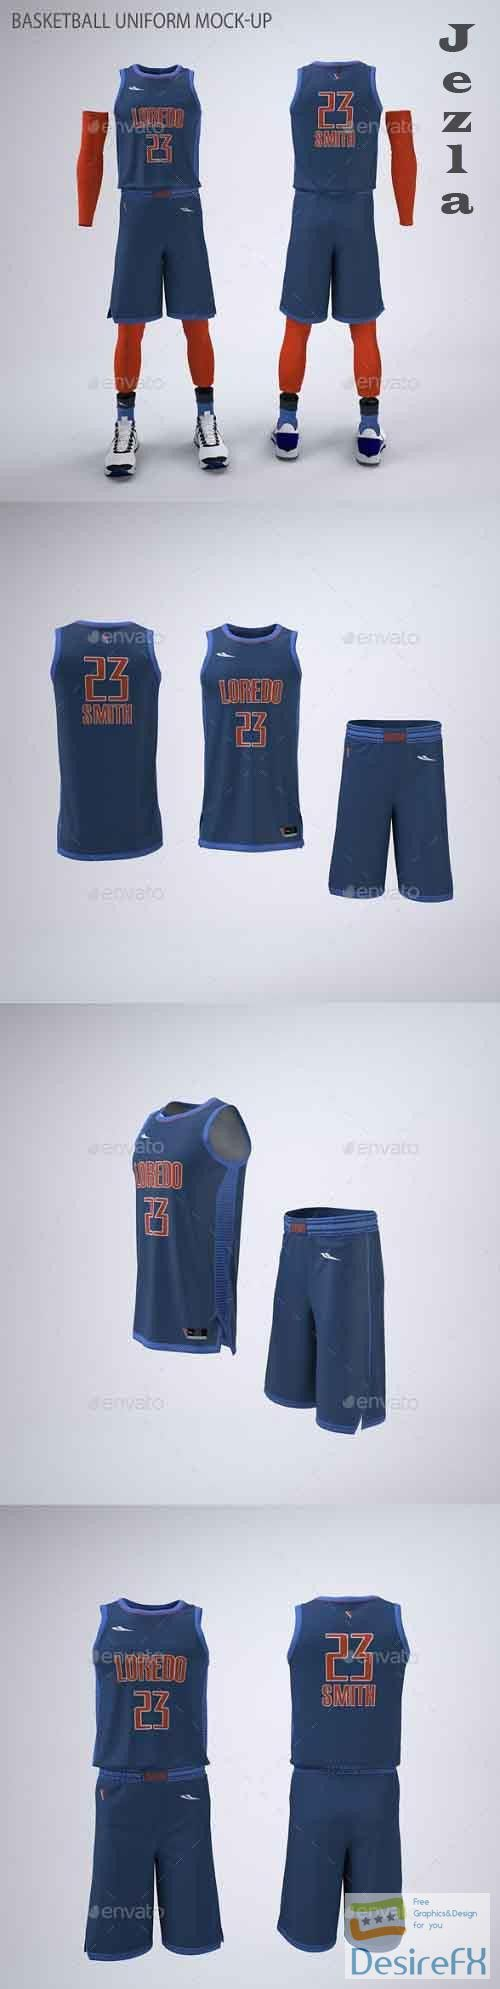 Download Download Basketball Jersey And Shorts Uniform Mock Up 21586628 Desirefx Com Basketball Jersey Basketball Kit Team Jersey